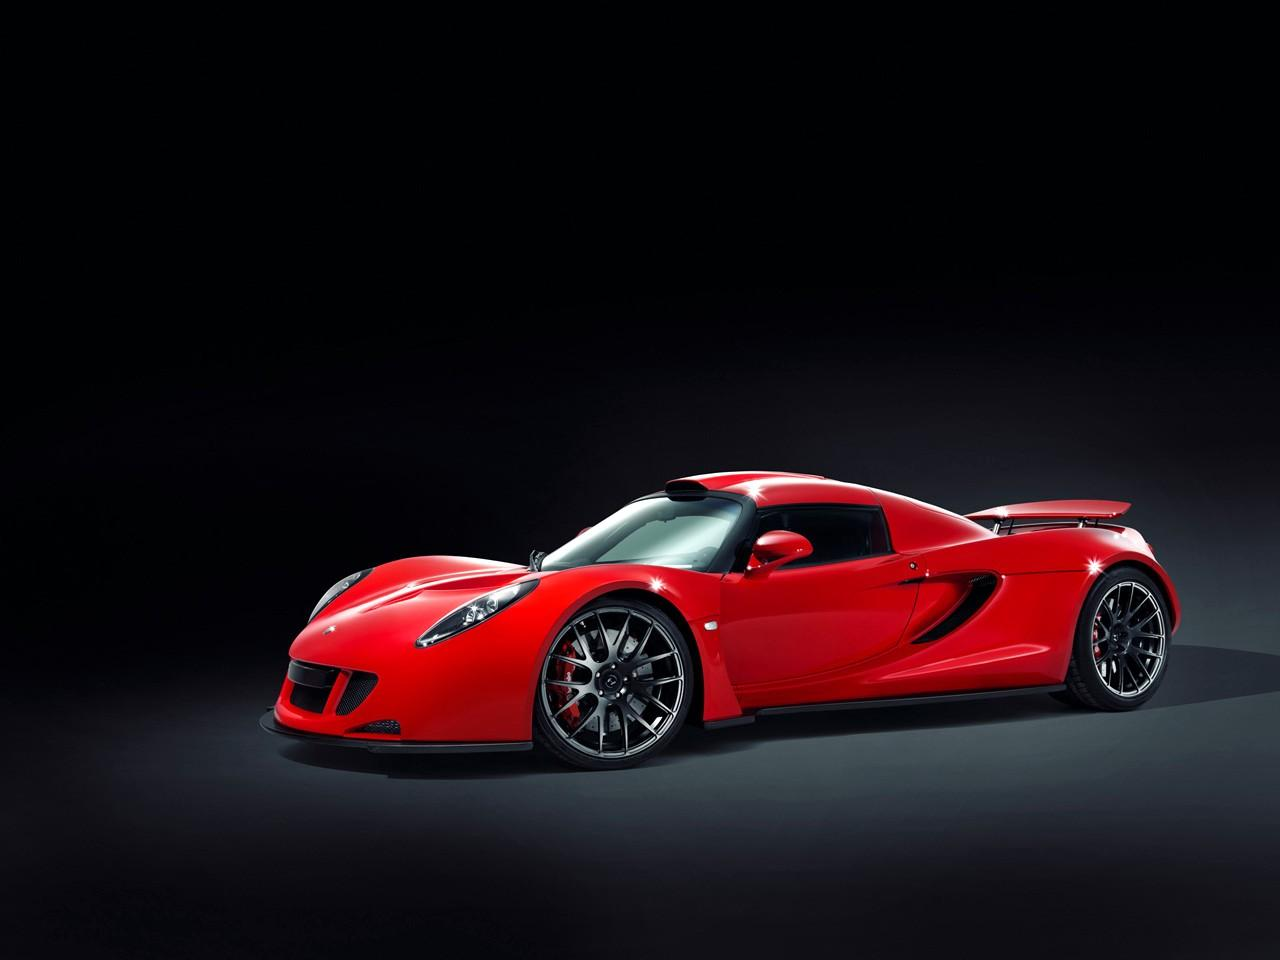 Hennessey Venom Gt wallpapers HD quality